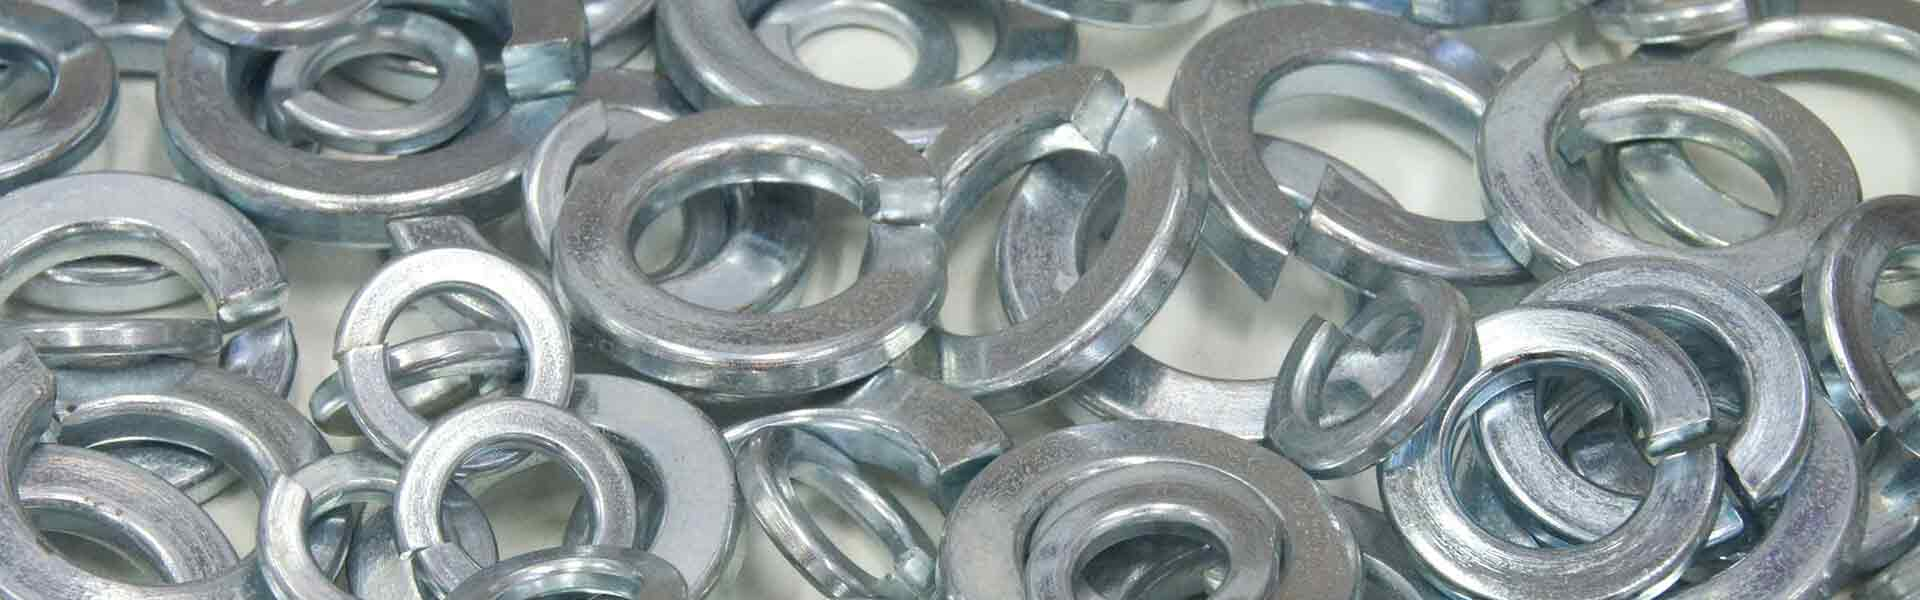 Stainless Steel Washer Fasteners